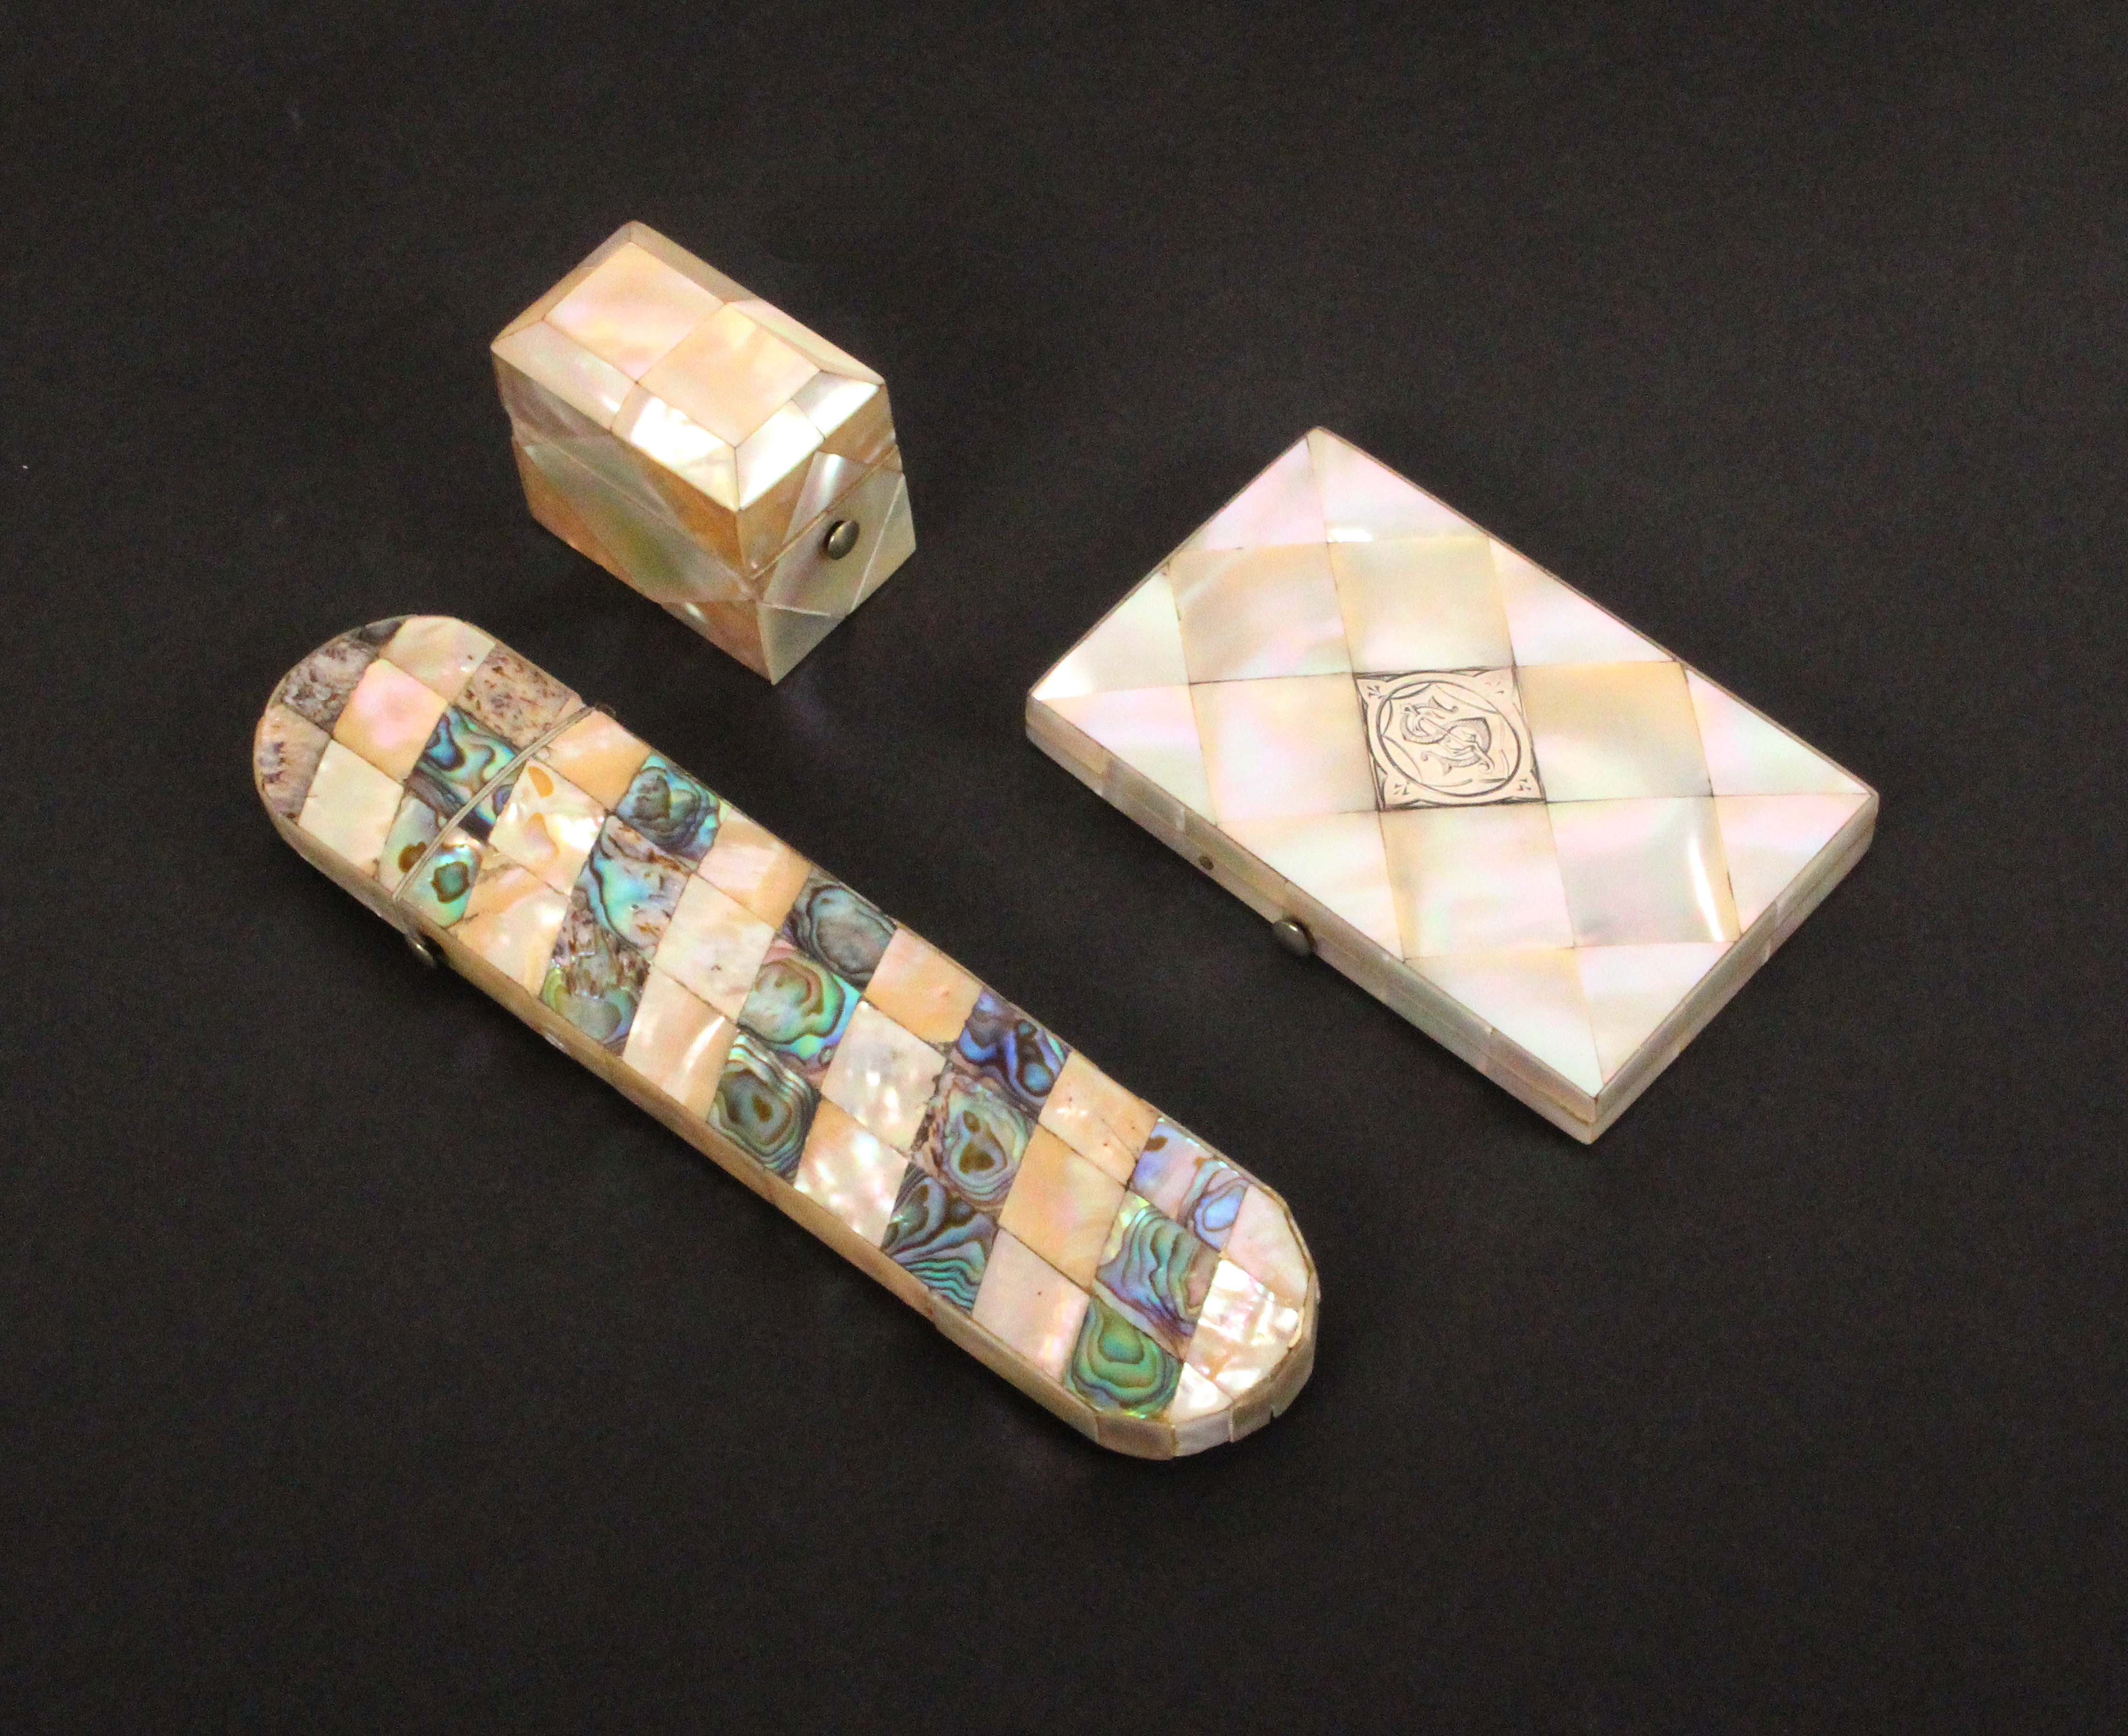 Three mother of pearl boxes, comprising a spectacle case with spiral bands of abalone shell, 15.